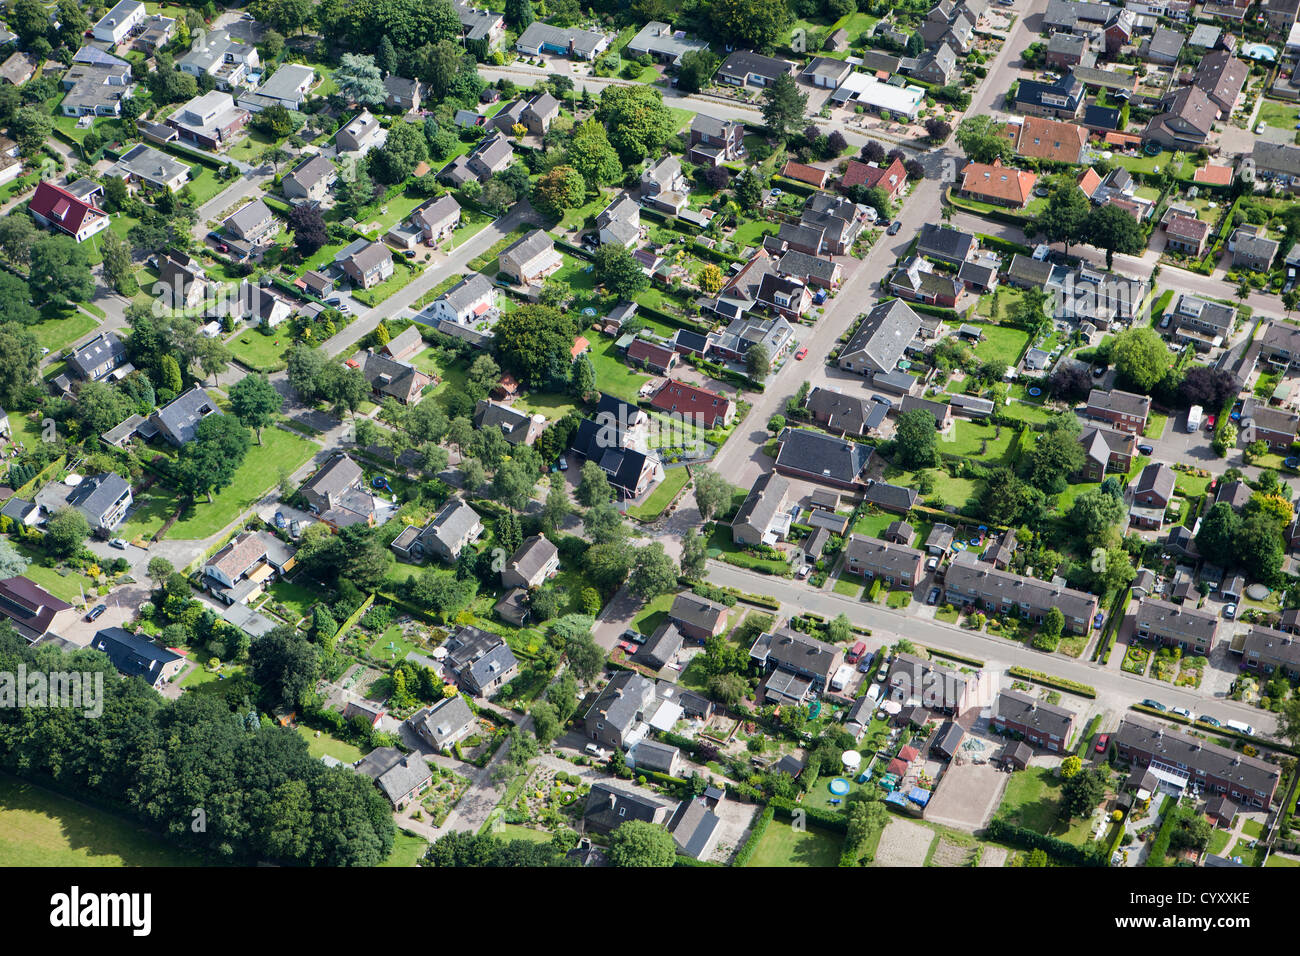 The Netherlands, Zuid Laren. Residential district. Aerial. - Stock Image